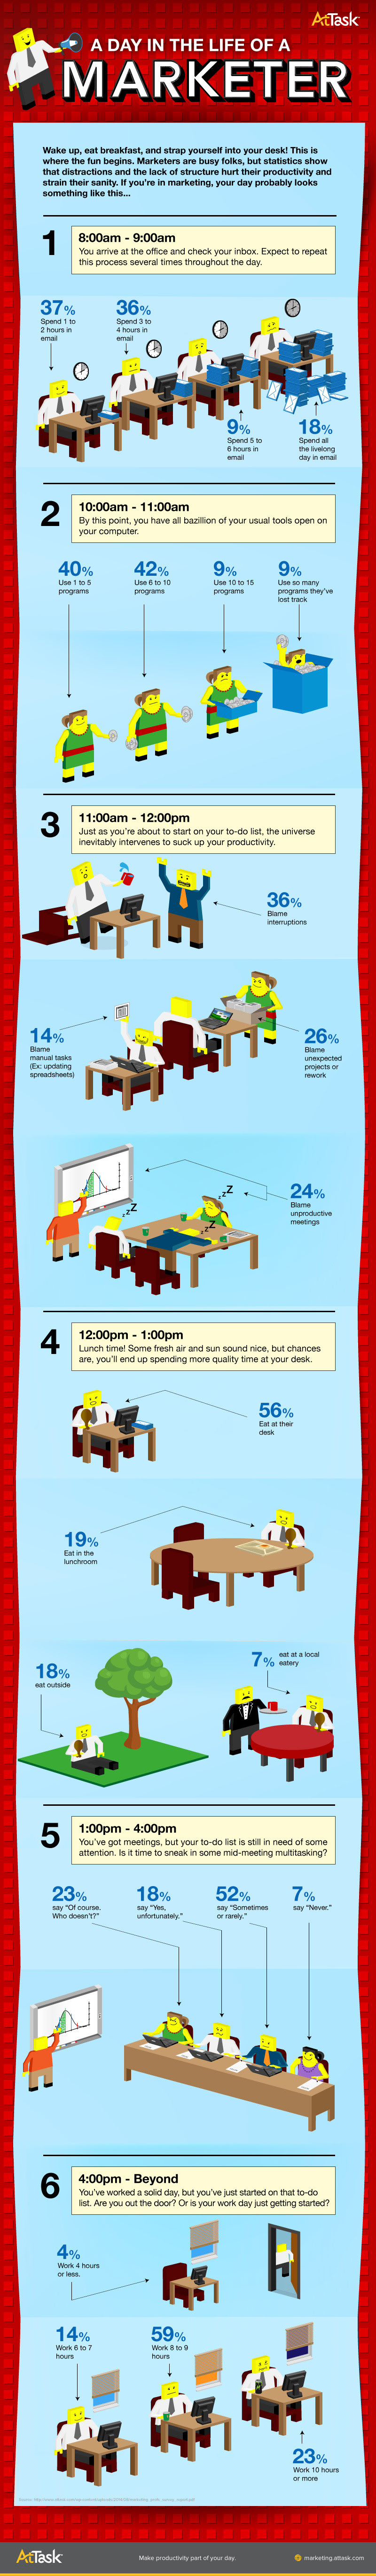 Infographic: A Day in the Life of a Digital Marketer